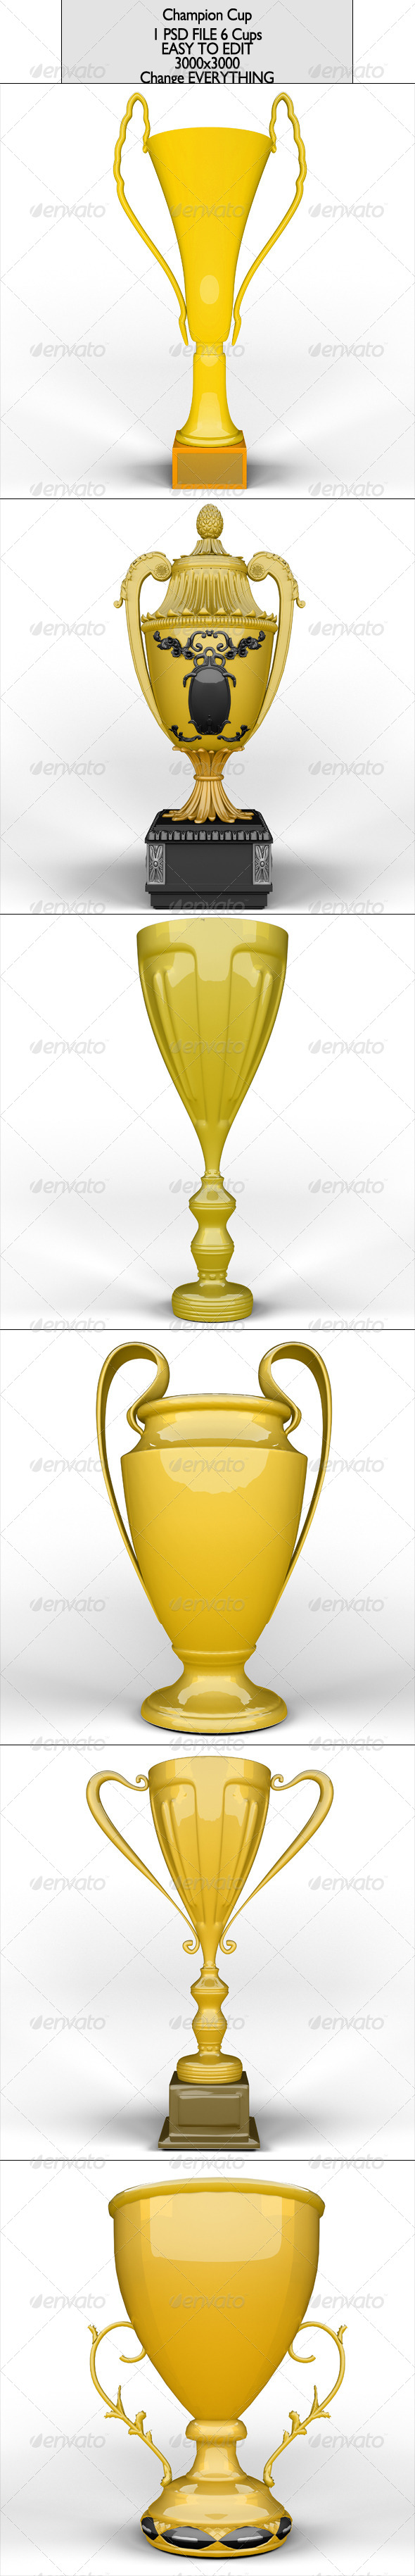 Champion Cup Pack  - 3D Renders Graphics